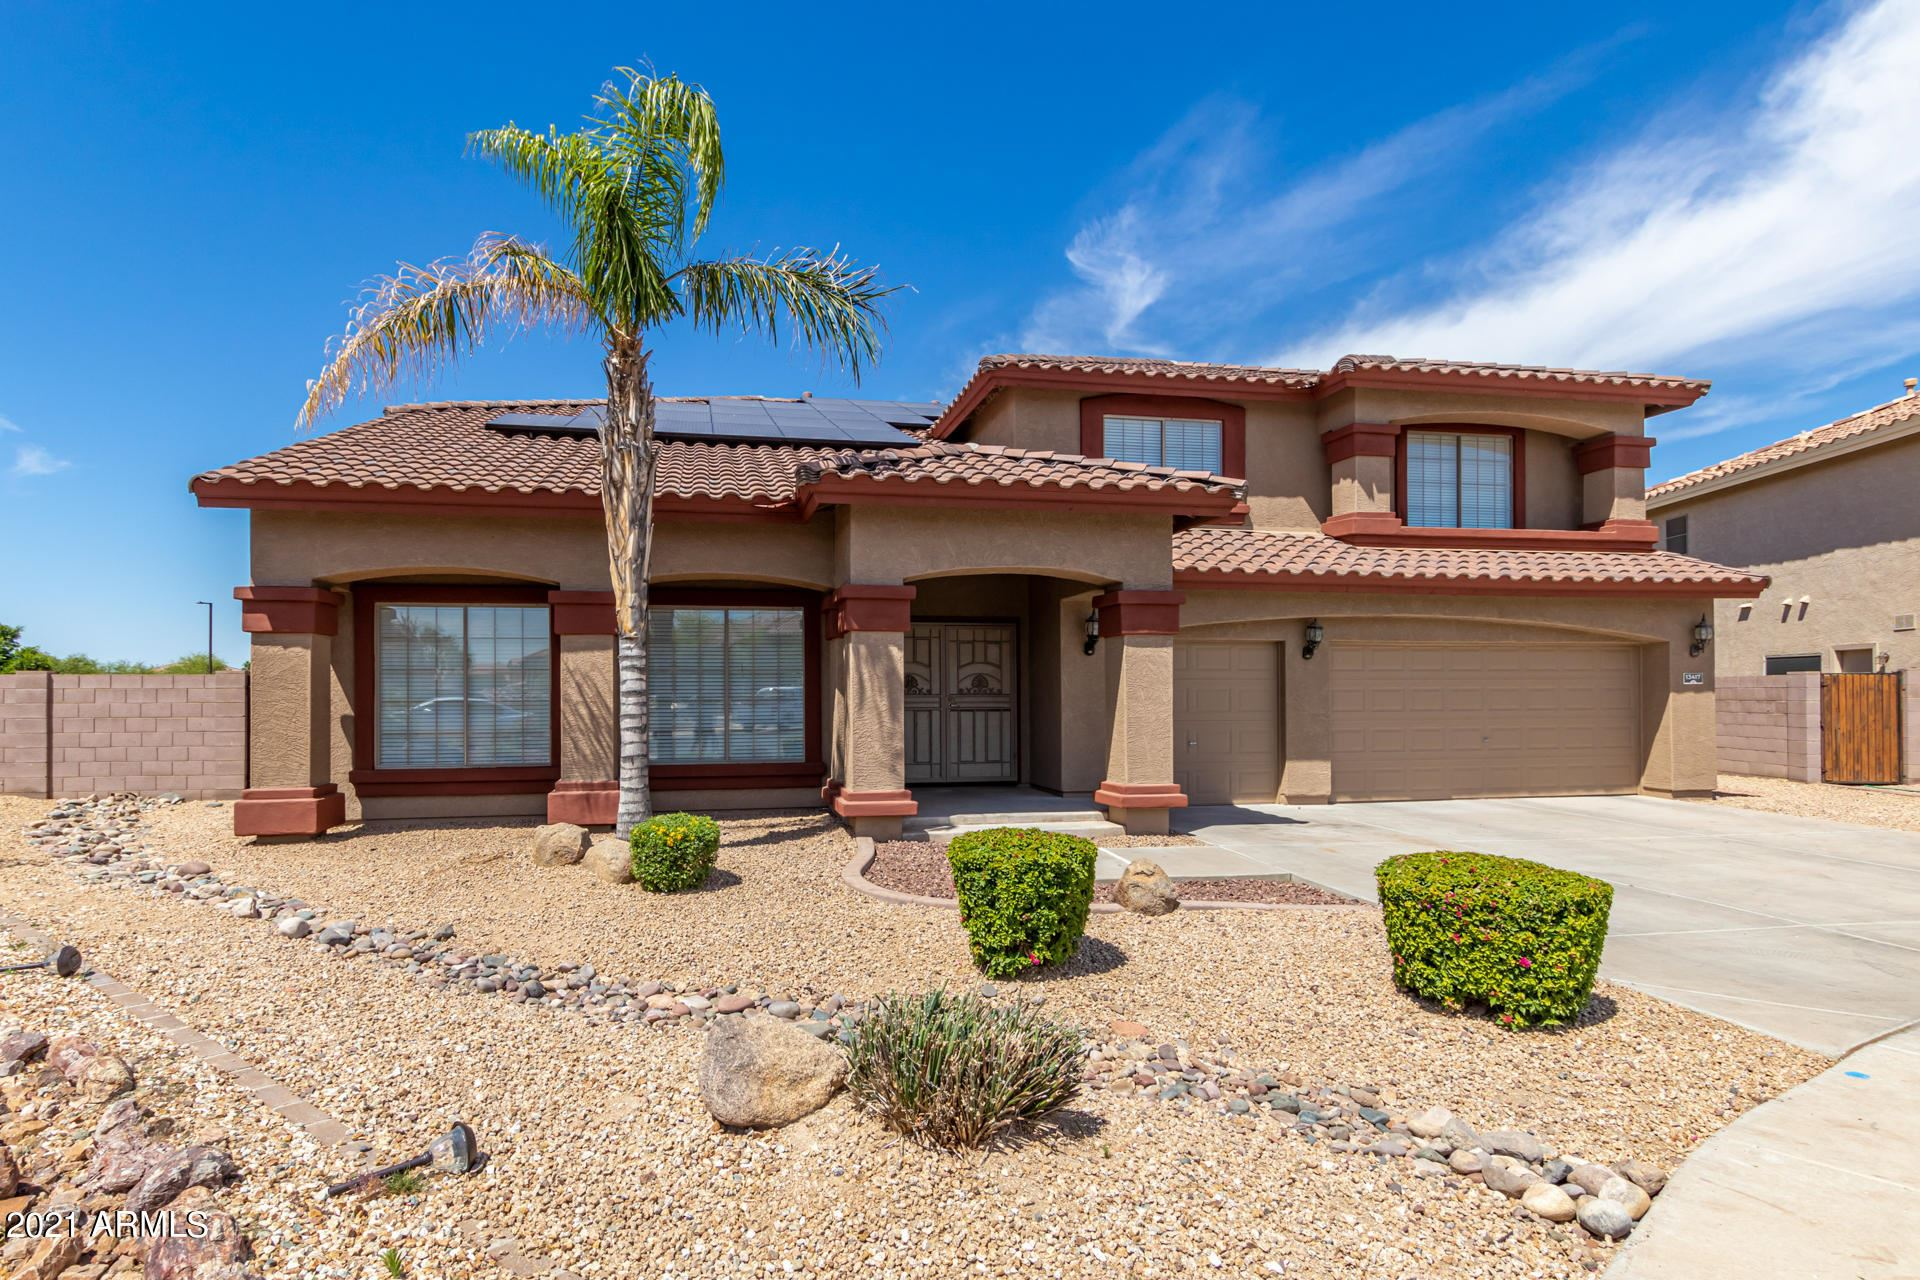 Photo of 13417 W SOLANO Drive, Litchfield Park, AZ 85340 (MLS # 6232445)